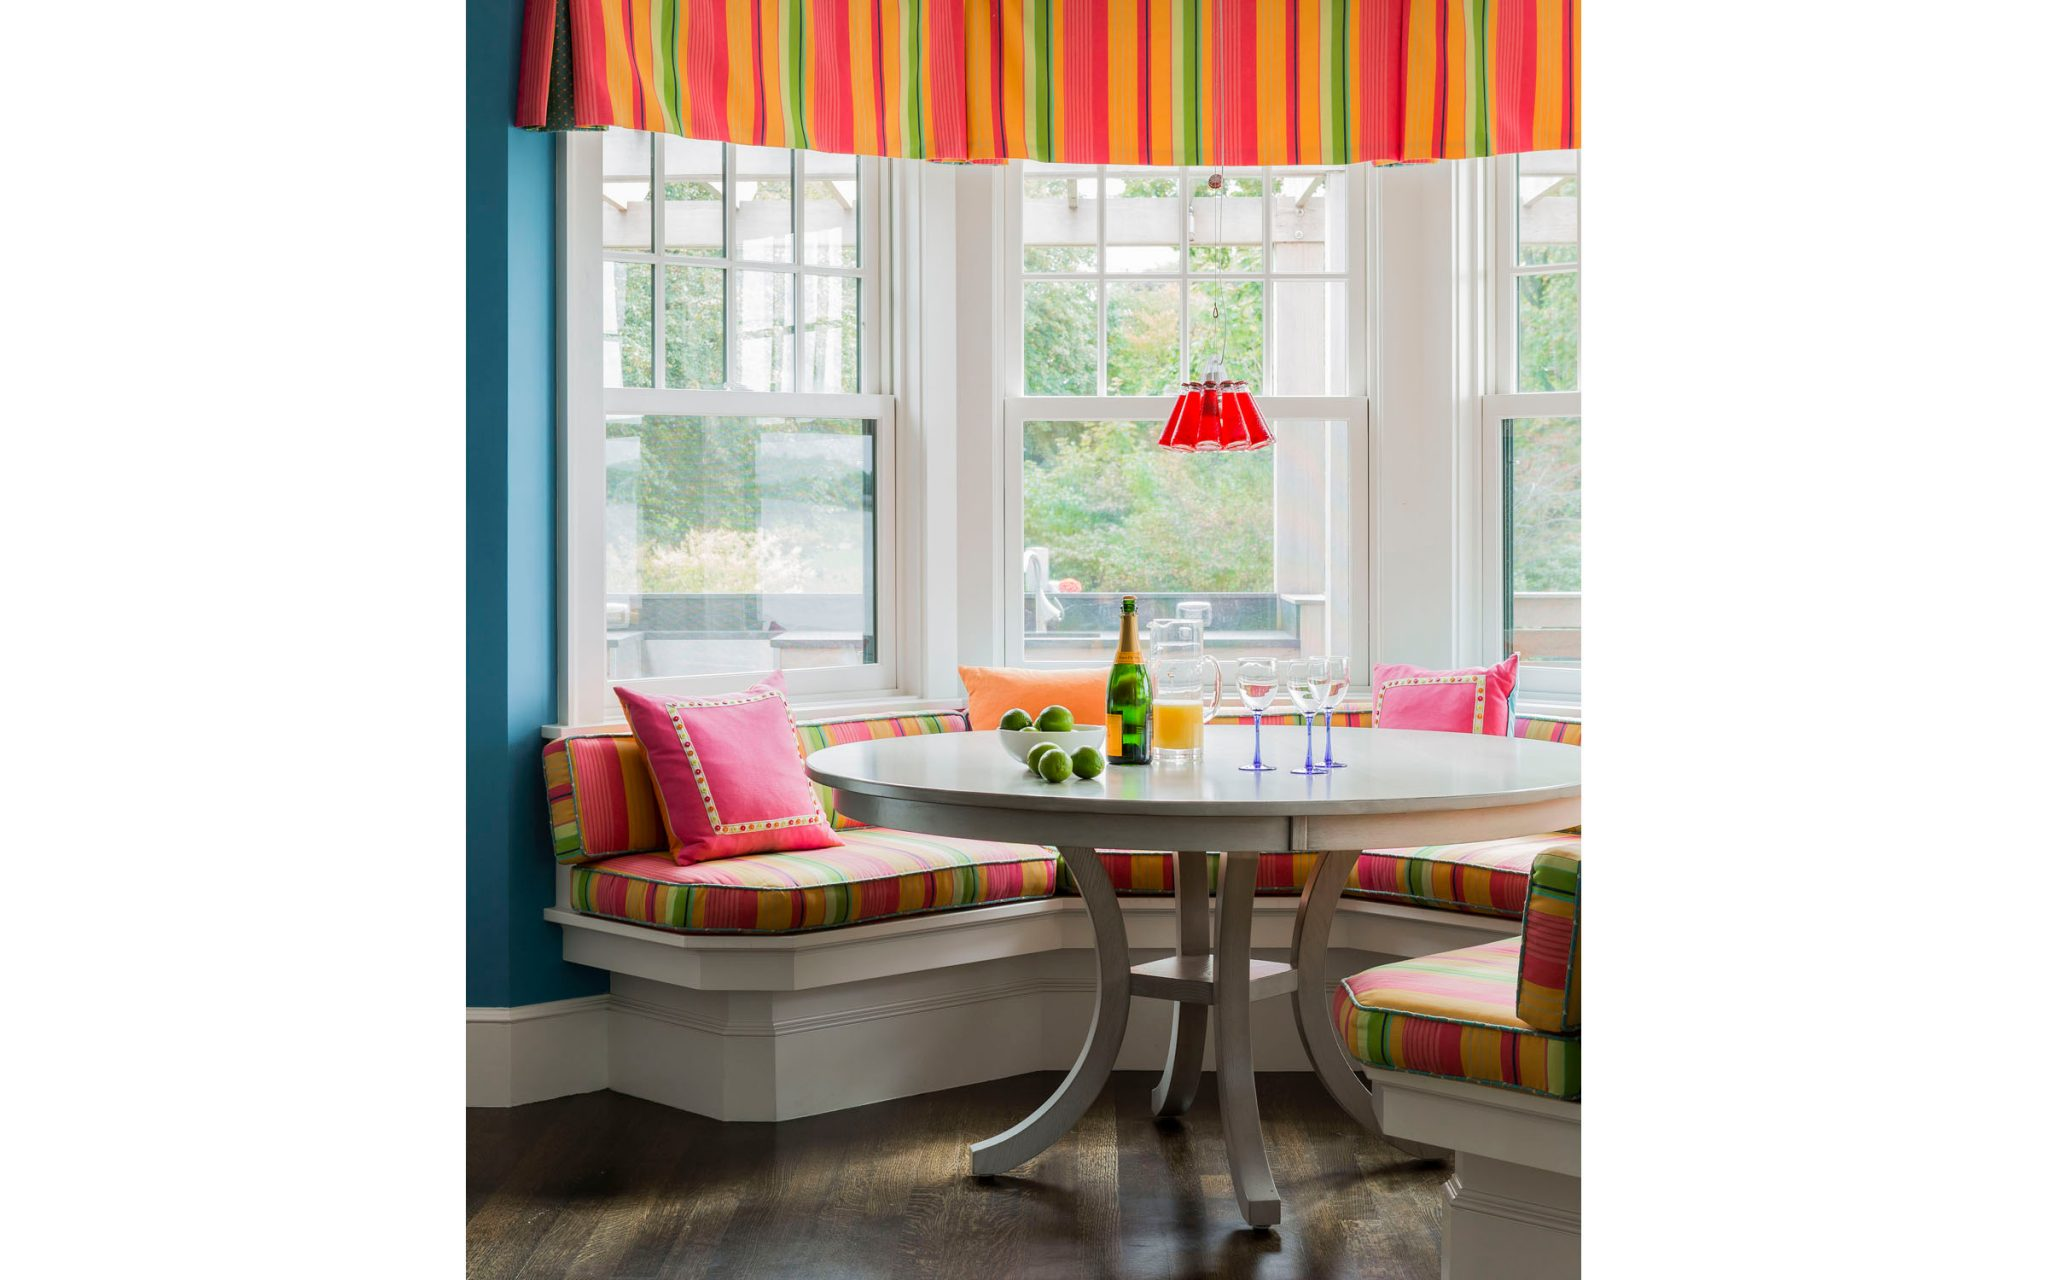 Colorful Kitchen Design Ideas 7 from Boston interior designer Elizabeth Swartz Interiors